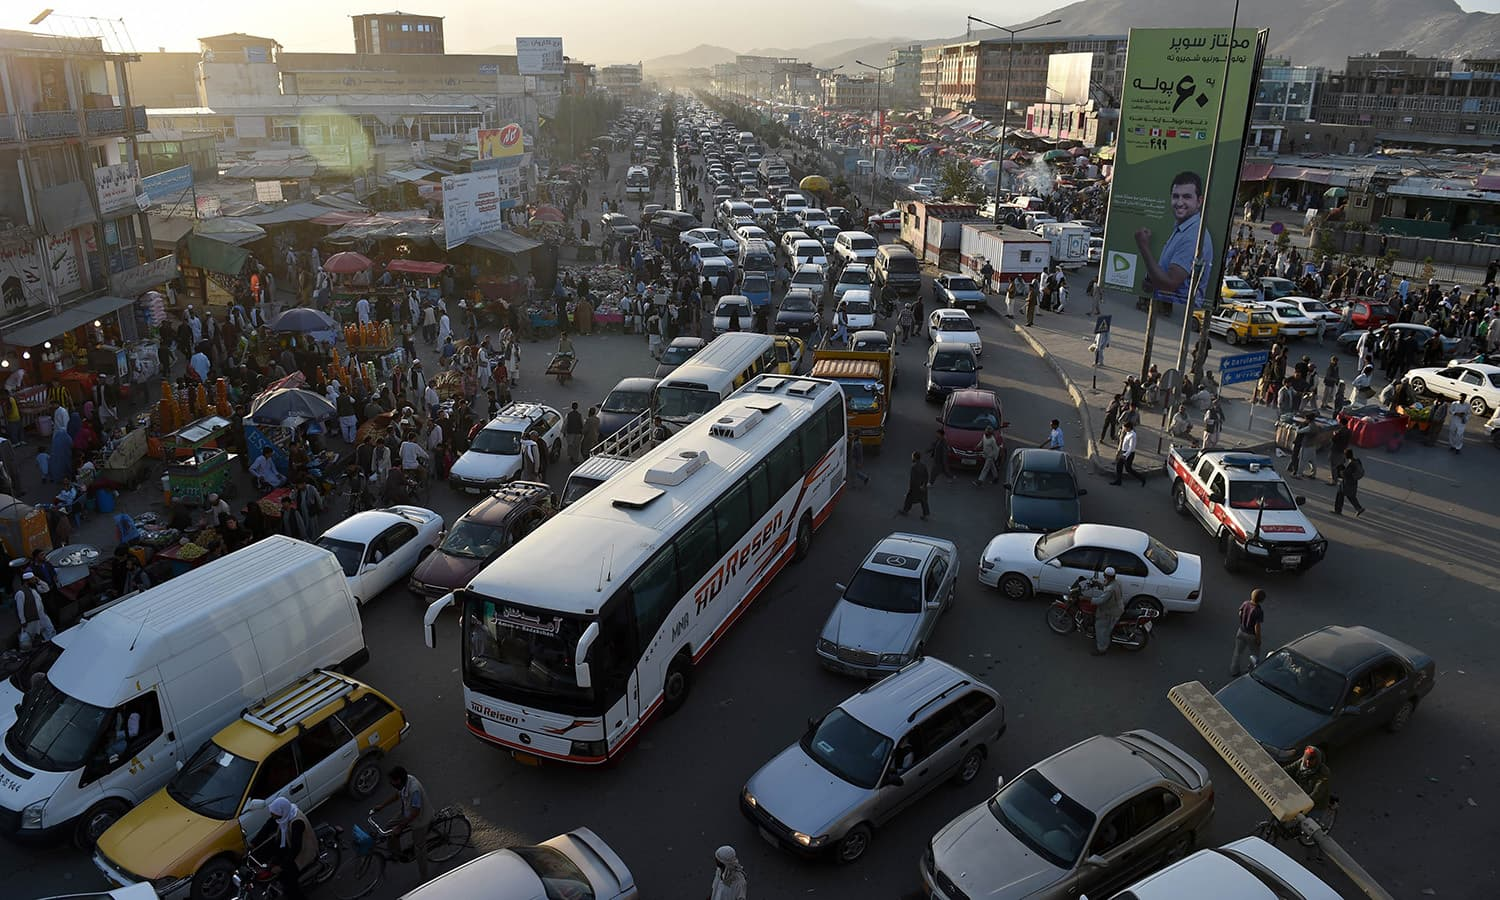 In this photograph taken on September 4, 2015, traffic is backed up during a jam at Kote Sangi in Kabul.  — AFP